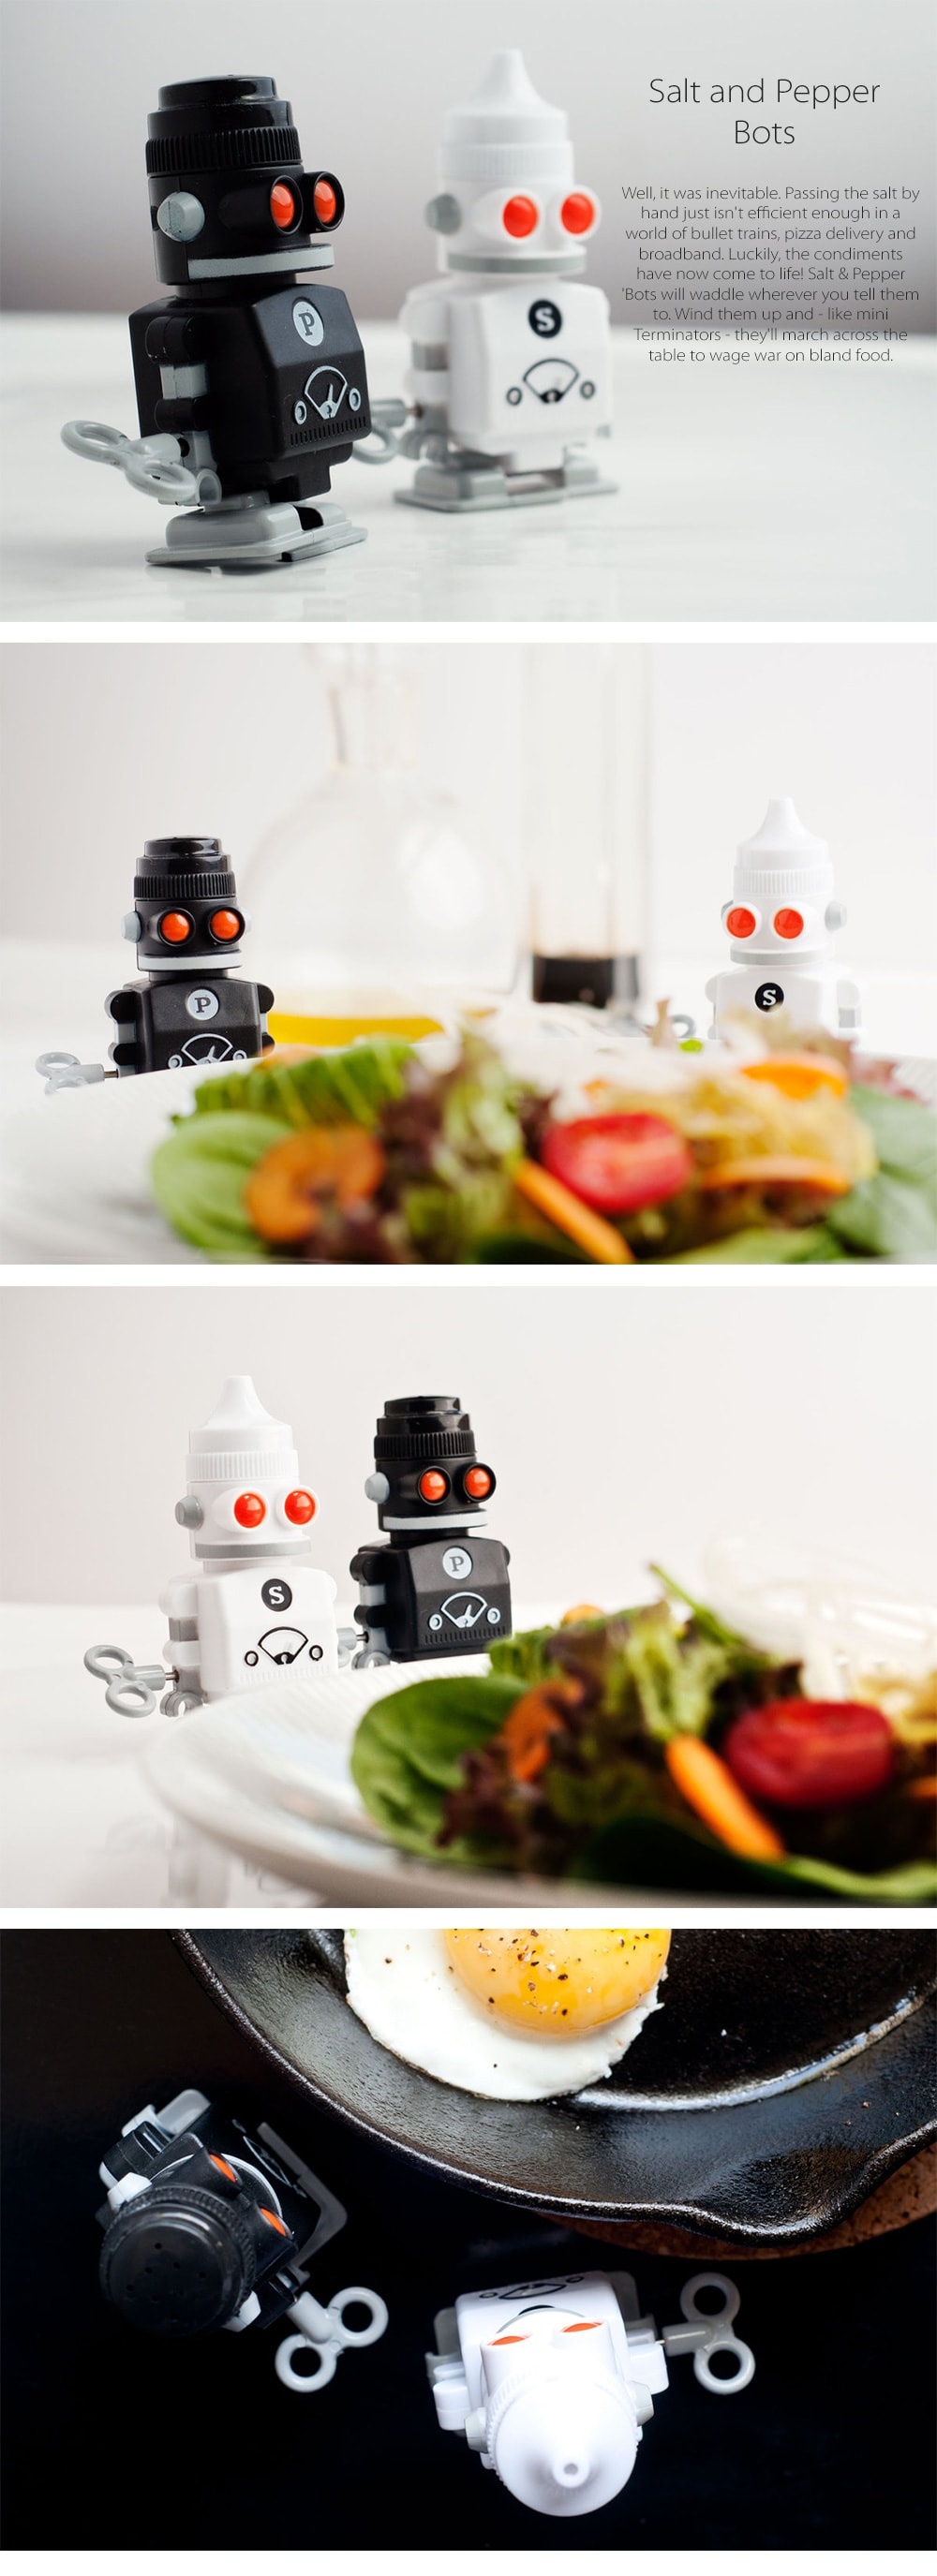 Salt & Pepper Bots Mini Terminators On The Table